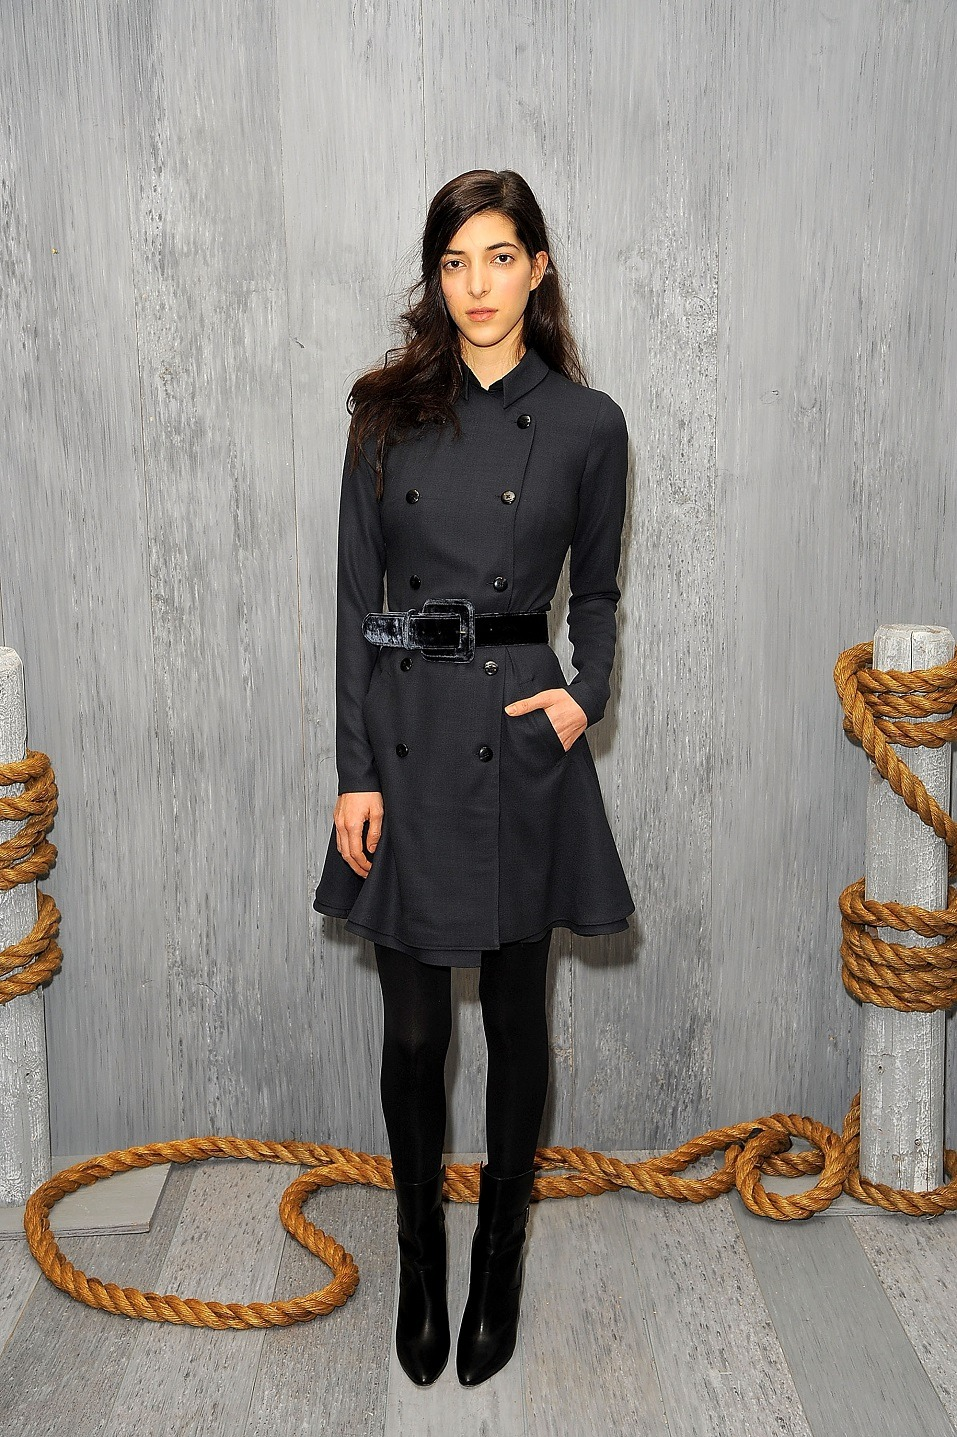 A model poses at the HANLEY MELLON Fall/Winter 2015 Collection Presentation